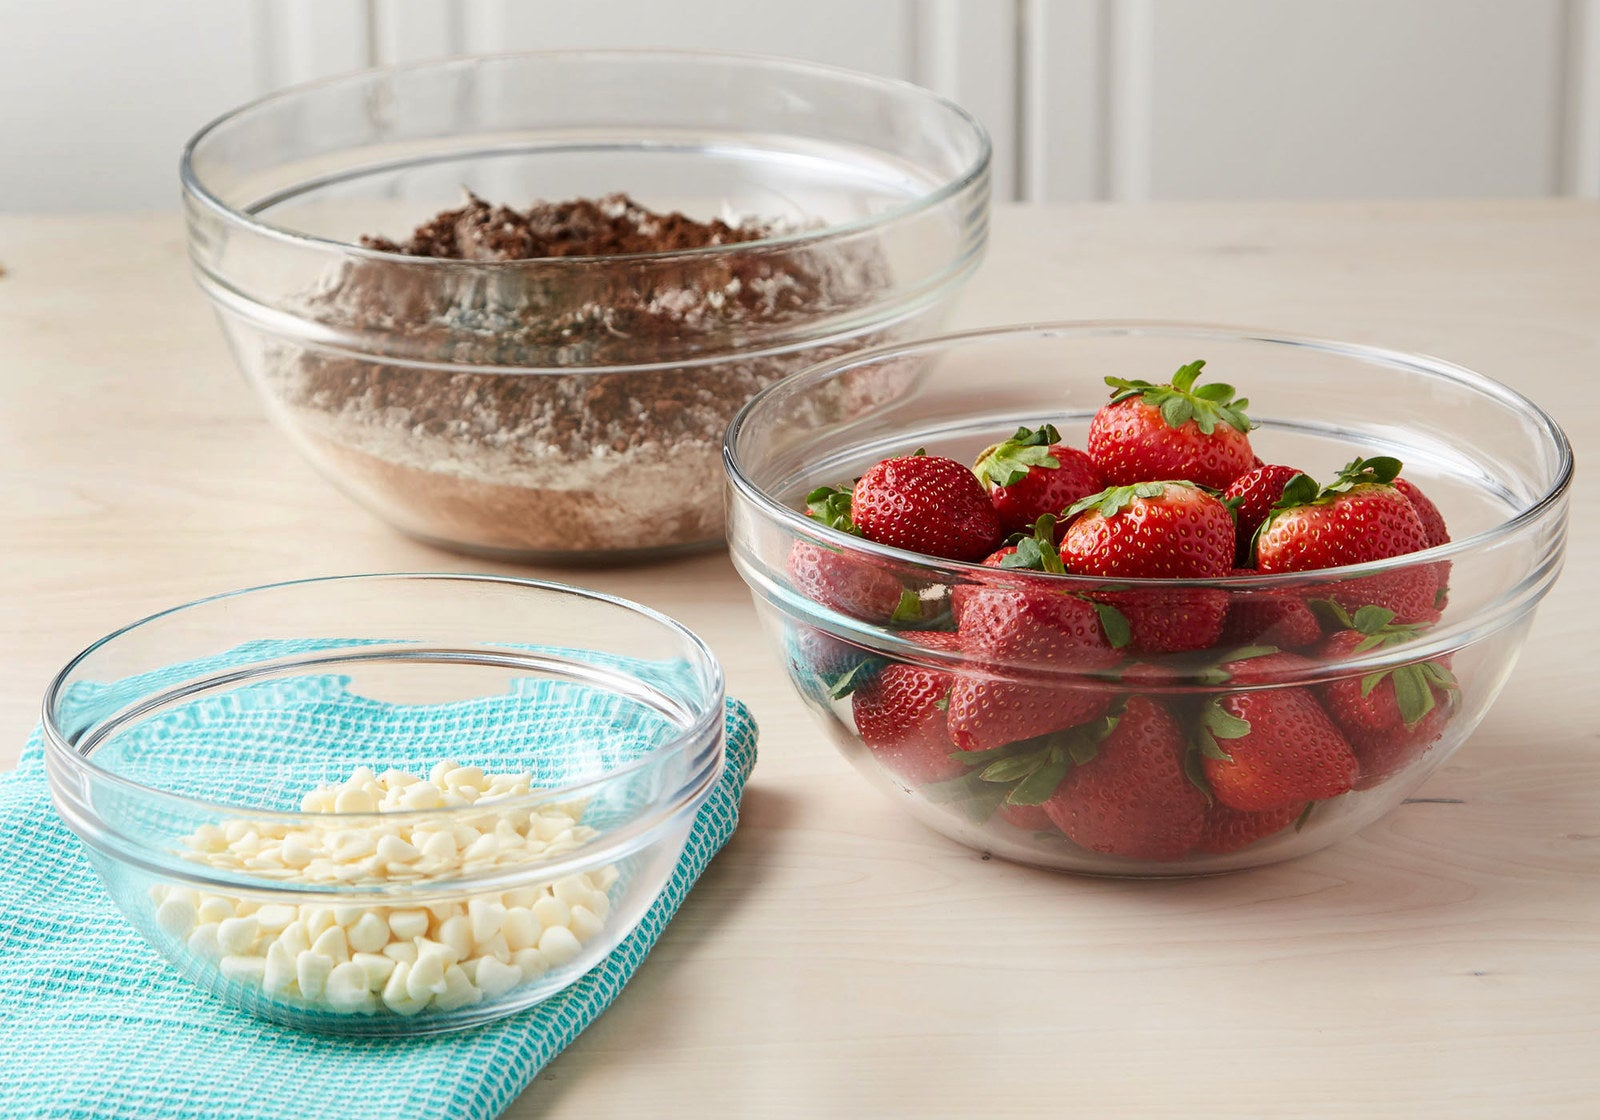 Includes one 1.2 qt. mixing bowl, one 3 qt. mixing bowl, and one 4.5 qt. mixing bowl. The bowls are made from tempered glass, are nested and stackable, and are also microwave-, freezer-, and dishwasher-safe. Get it from BuzzFeed's Tasty line, exclusively at Walmart for $17.44.